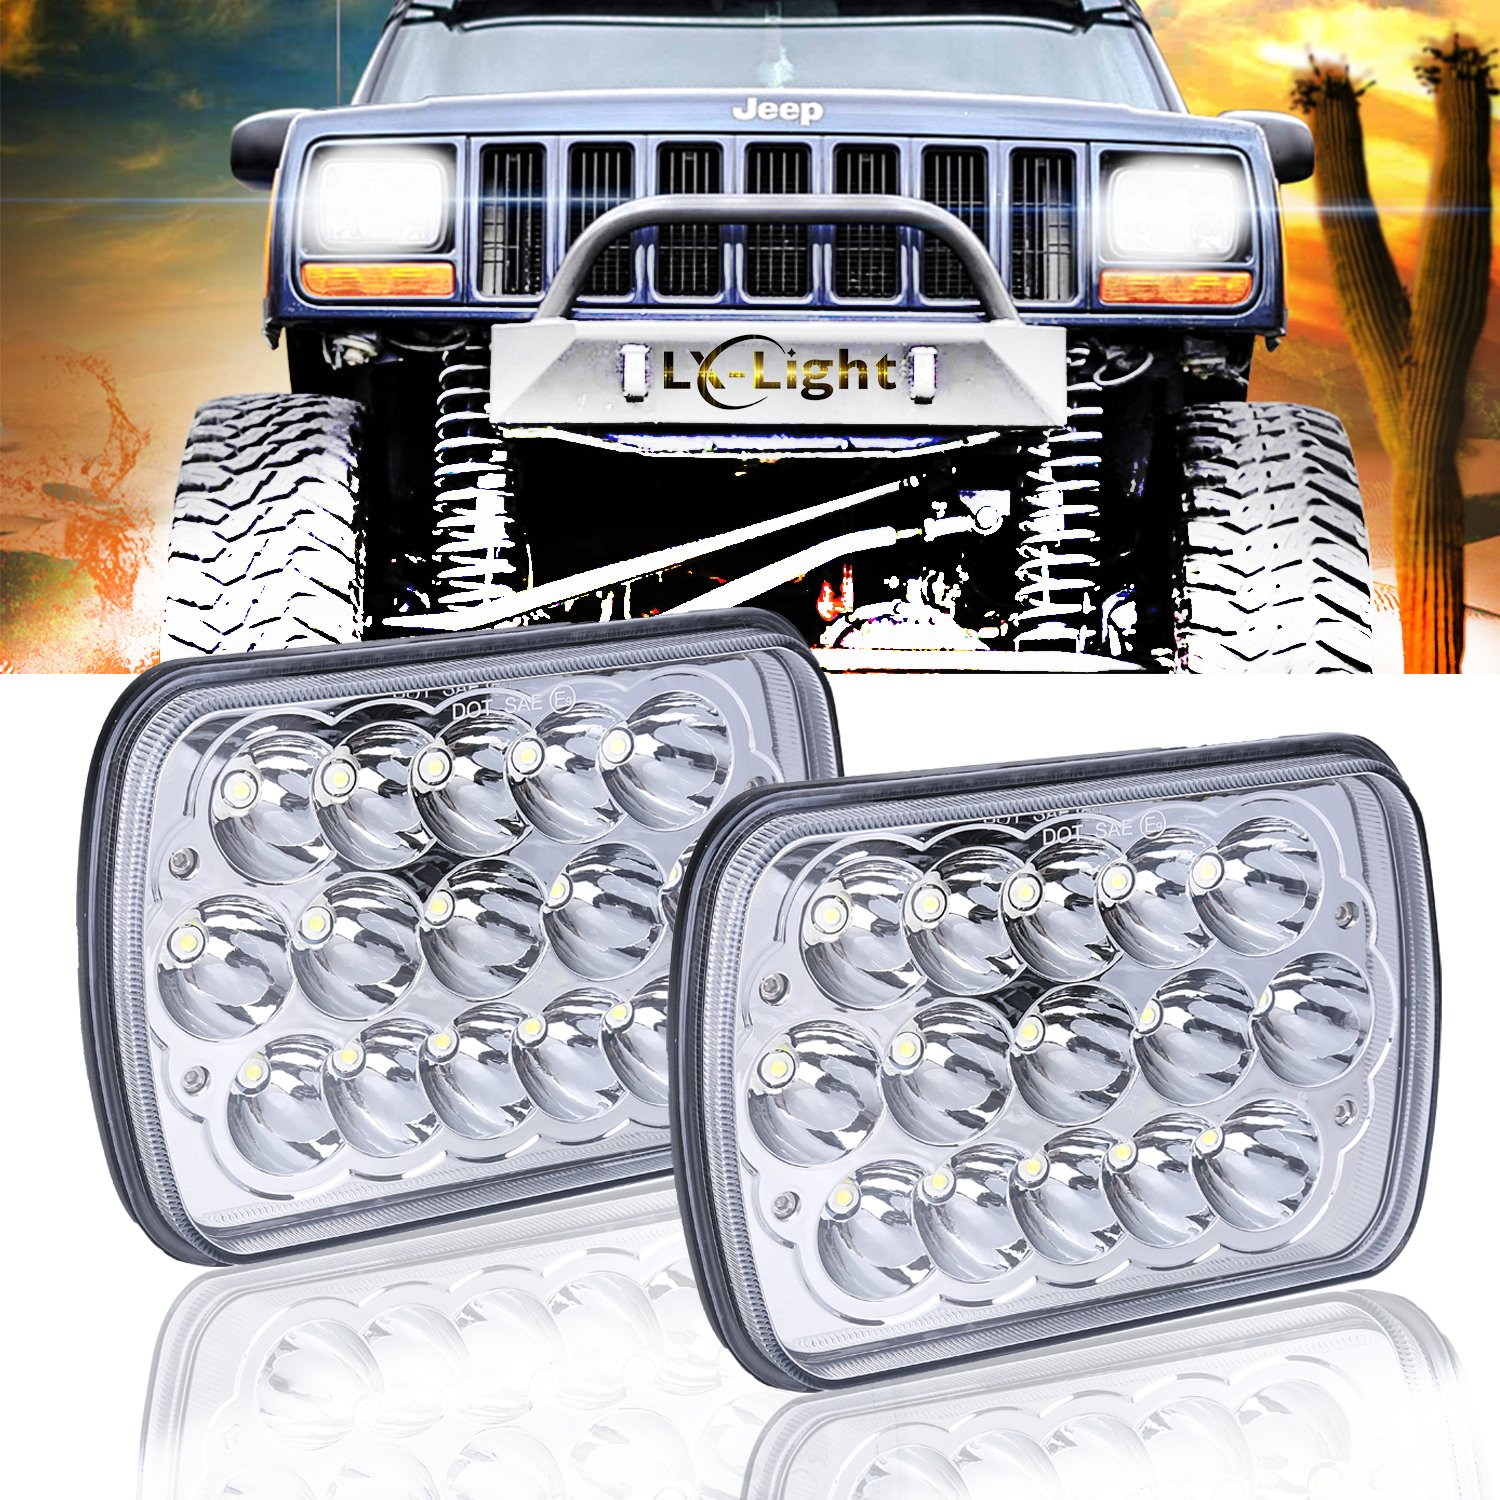 (2 Pcs) DOT approved 5' x 7' 6x7inch Rectangular LED Headlights for Jeep Wrangler YJ Cherokee XJ Trucks 4X4 Offroad Headlamp Replacement H6054 H5054 H6054LL 69822 6052 6053 LX-LIGHT